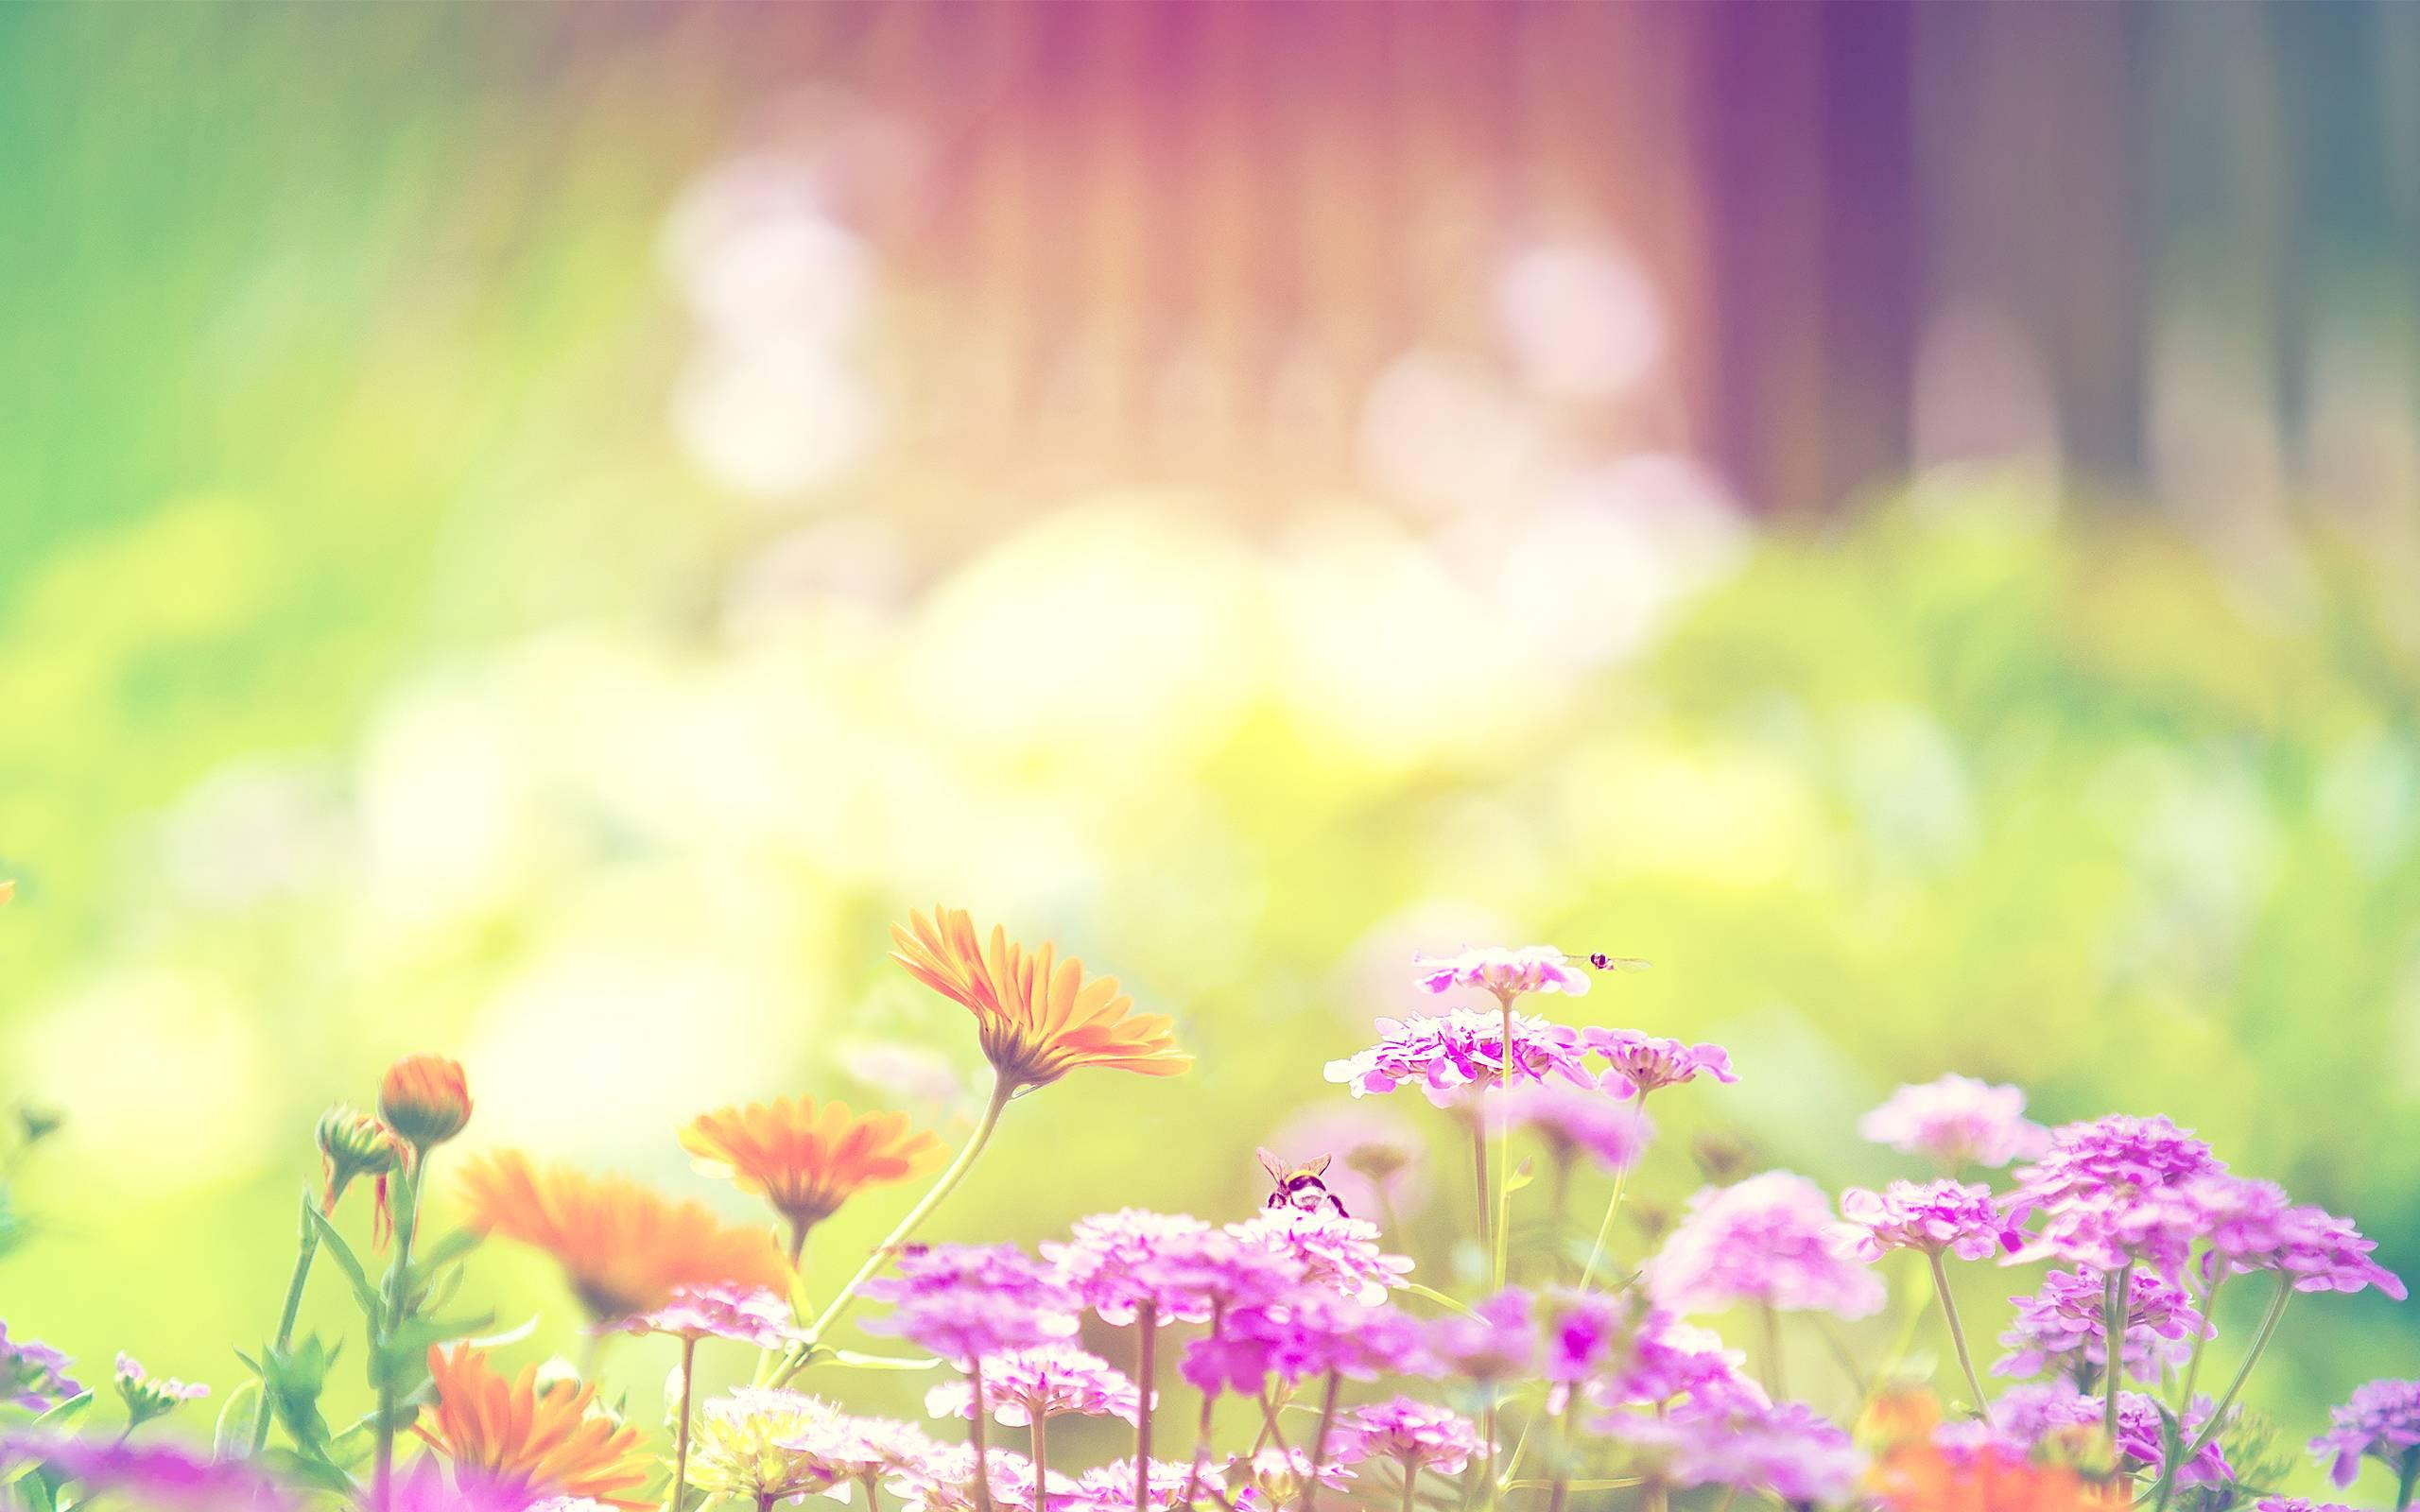 Wallpaper cute spring flowers hd desktop flowers desktop download mightylinksfo